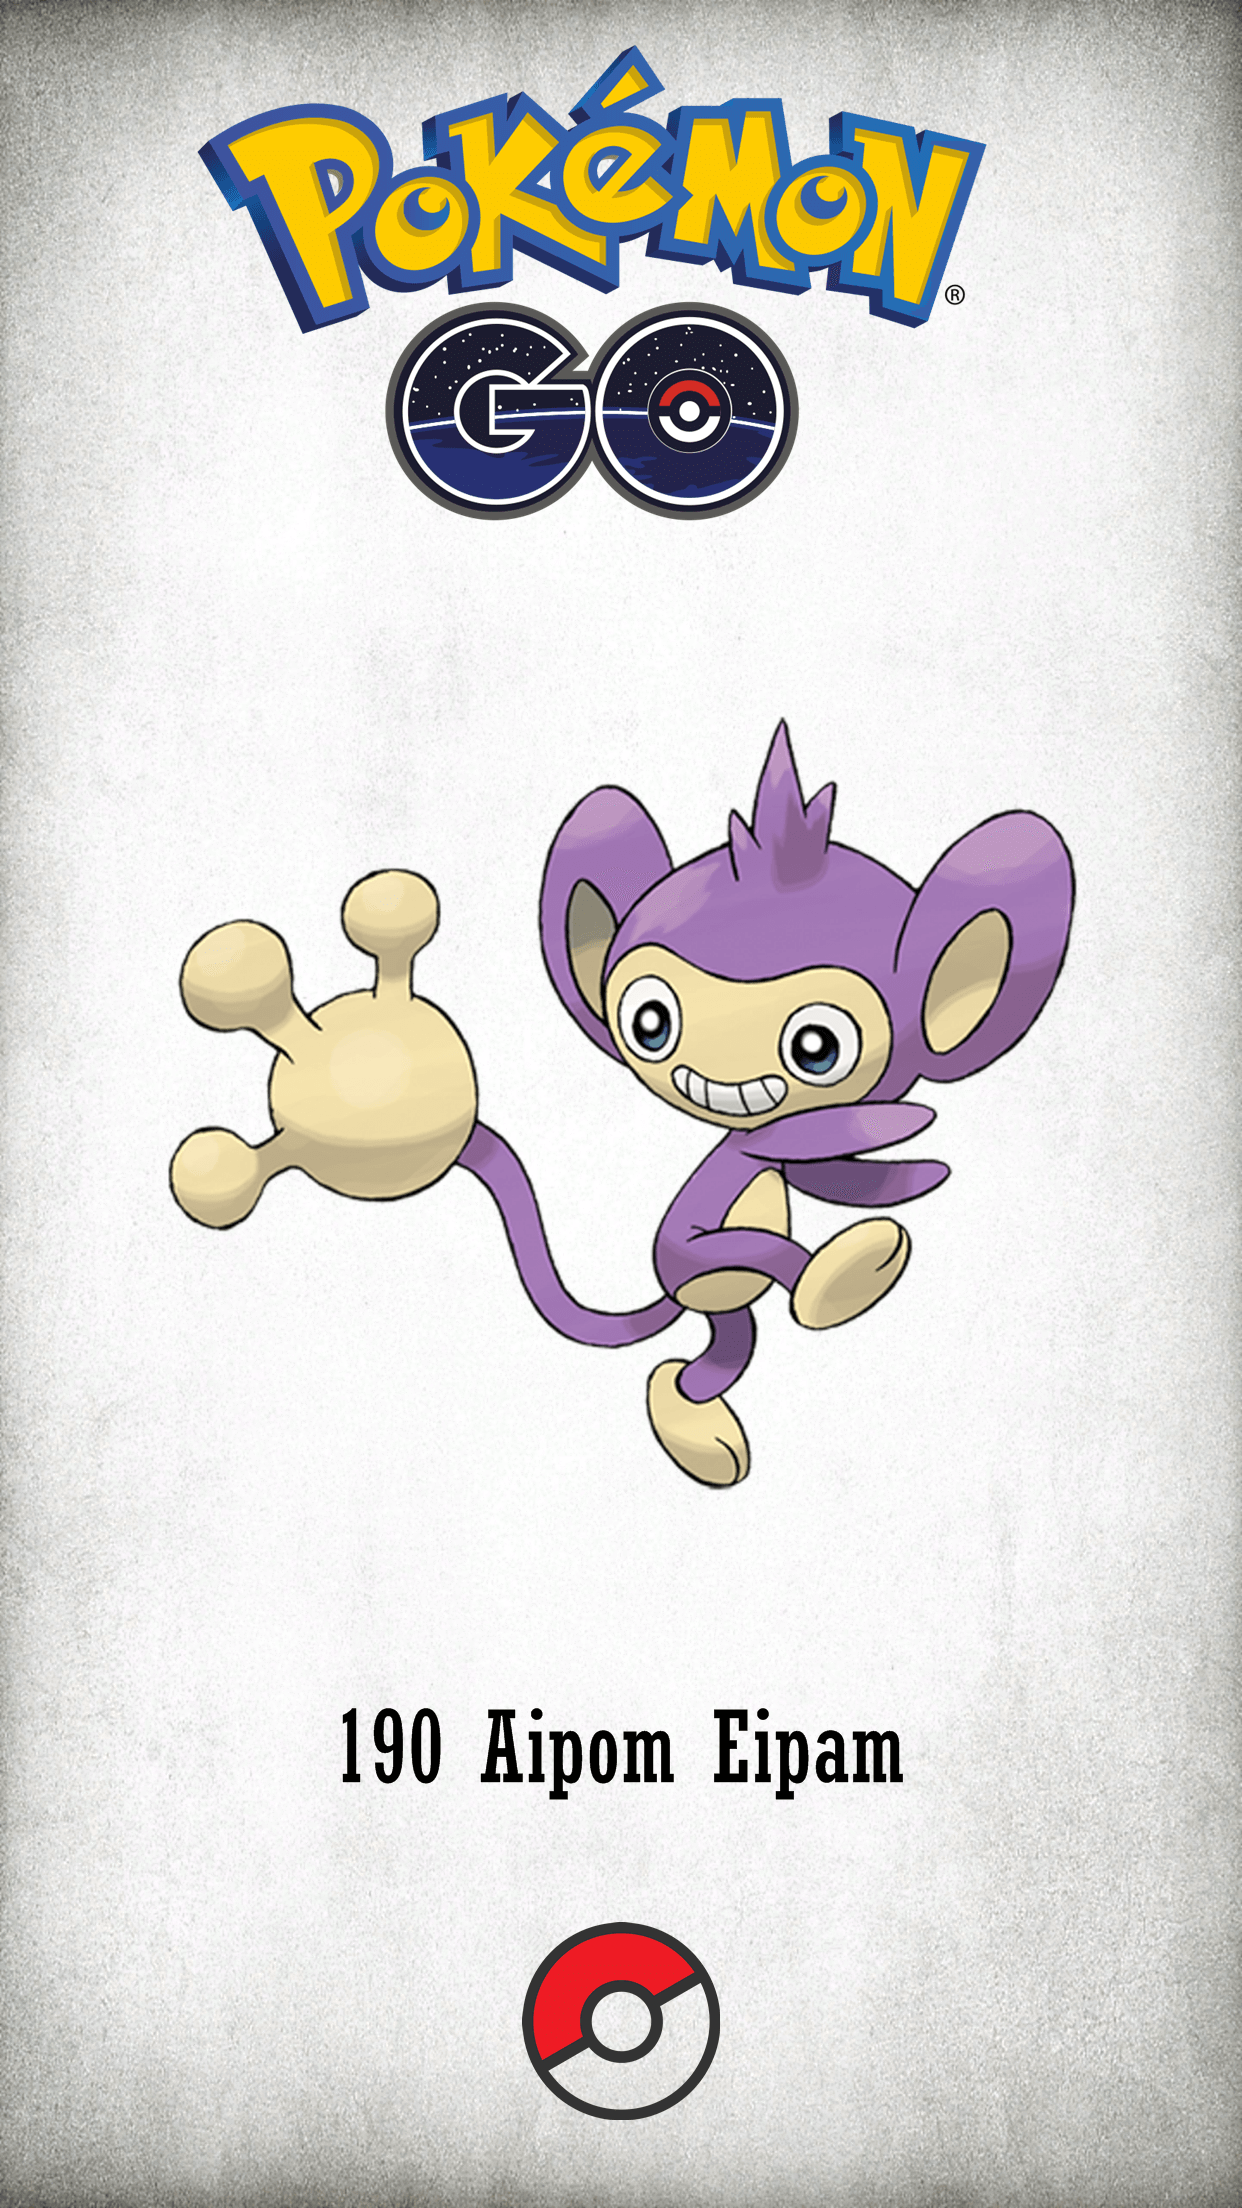 190 Character Aipom Eipam | Wallpaper